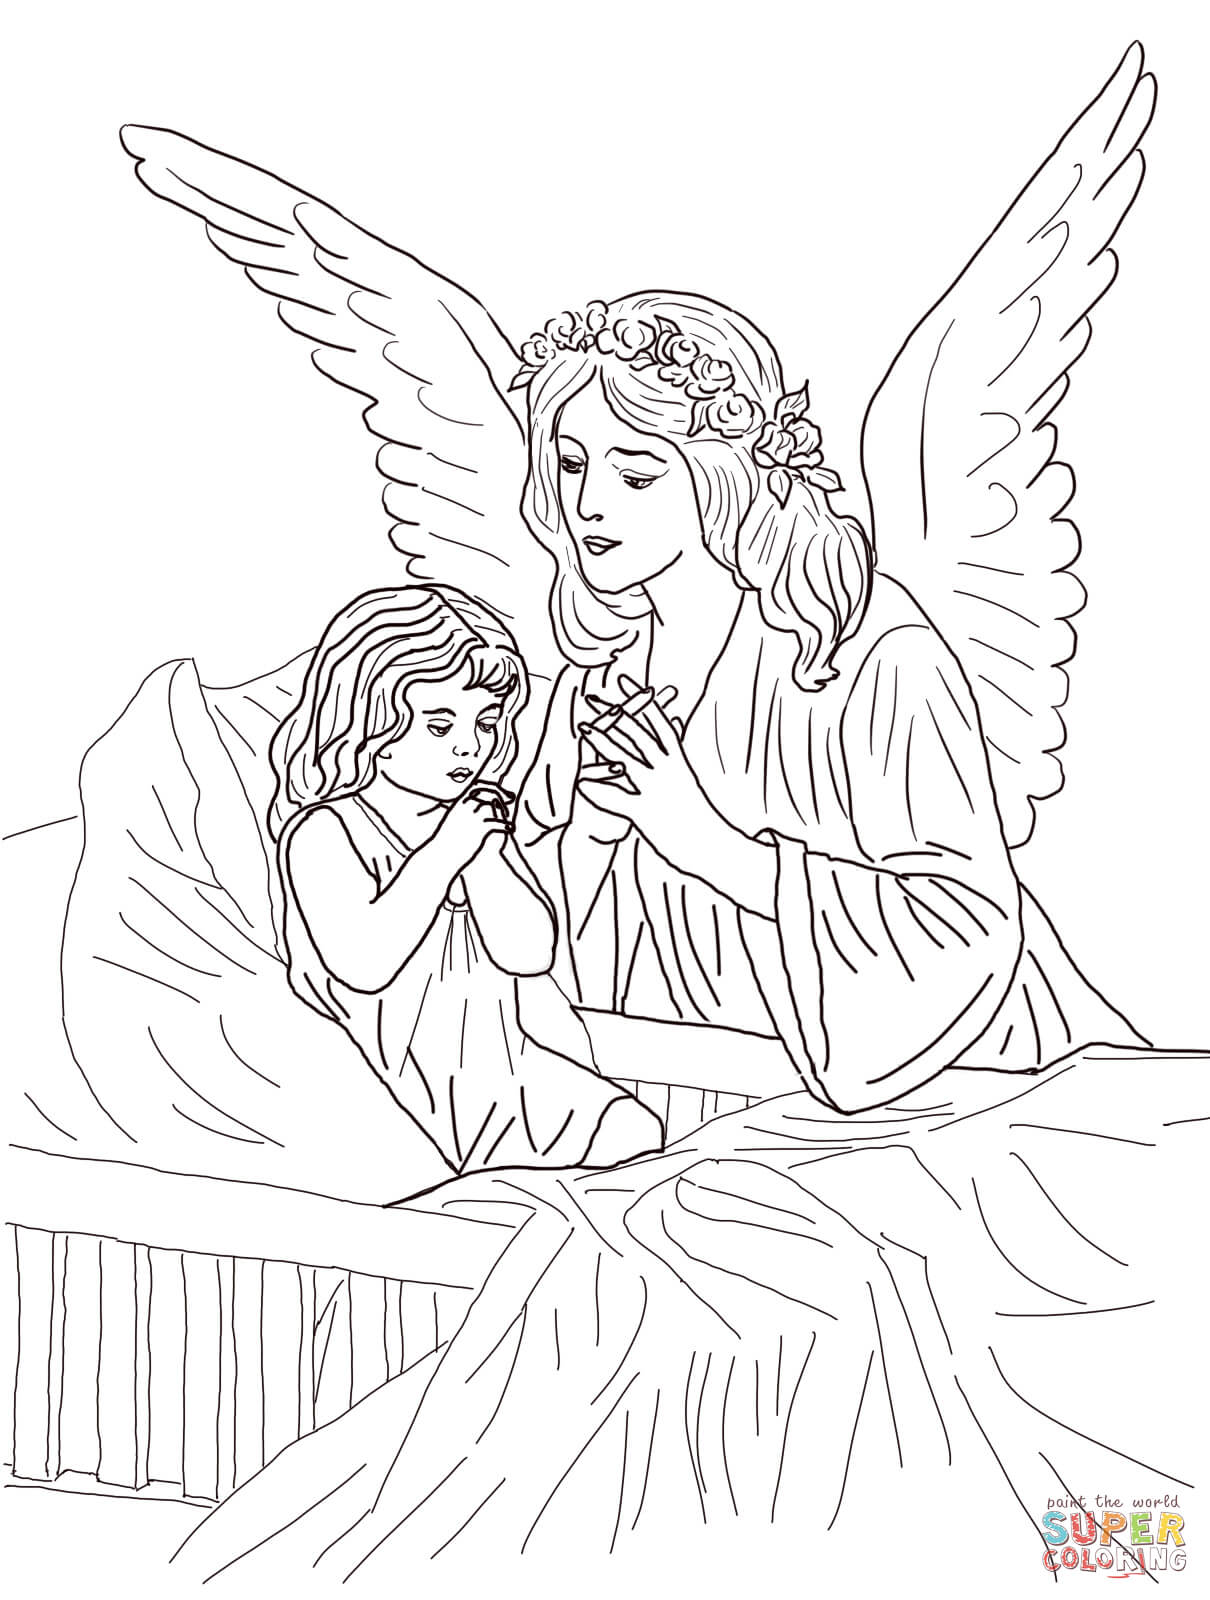 Free Angel Coloring Pages For Adults - Coloring Home